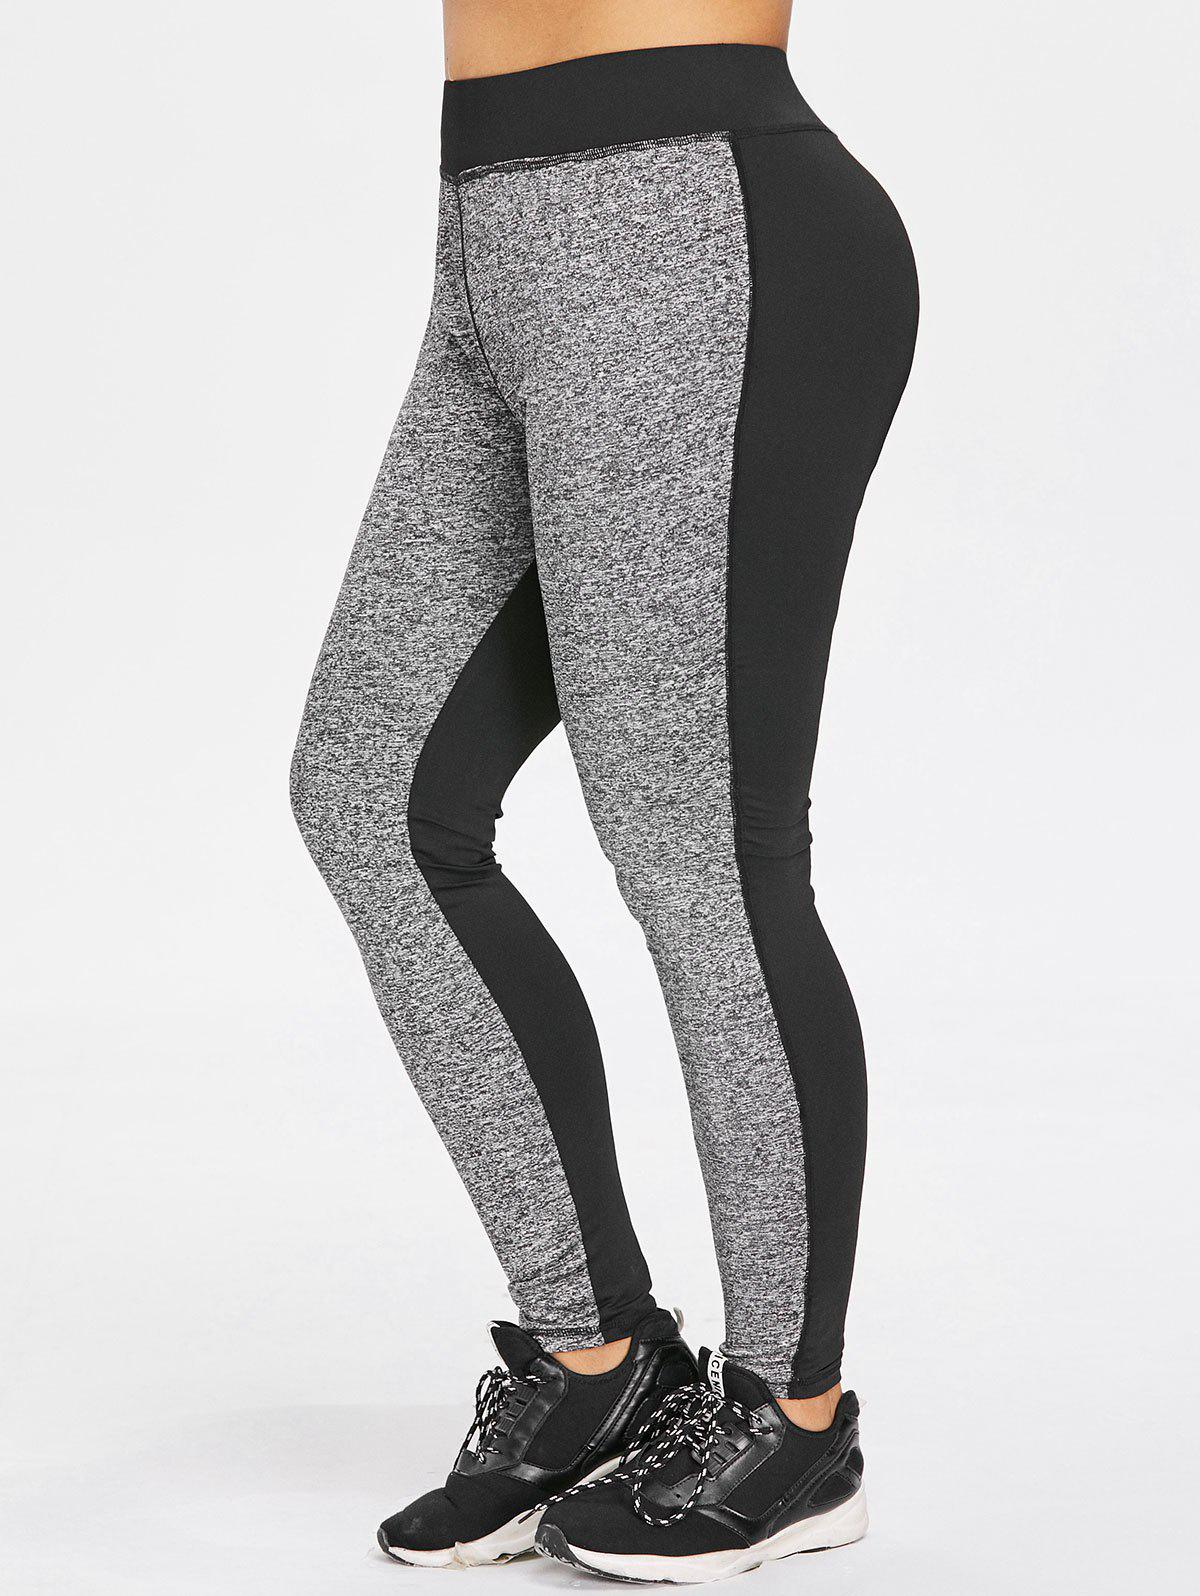 3c9a3f1541be6 26% OFF] Plus Size Marled High Waisted Gym Leggings | Rosegal